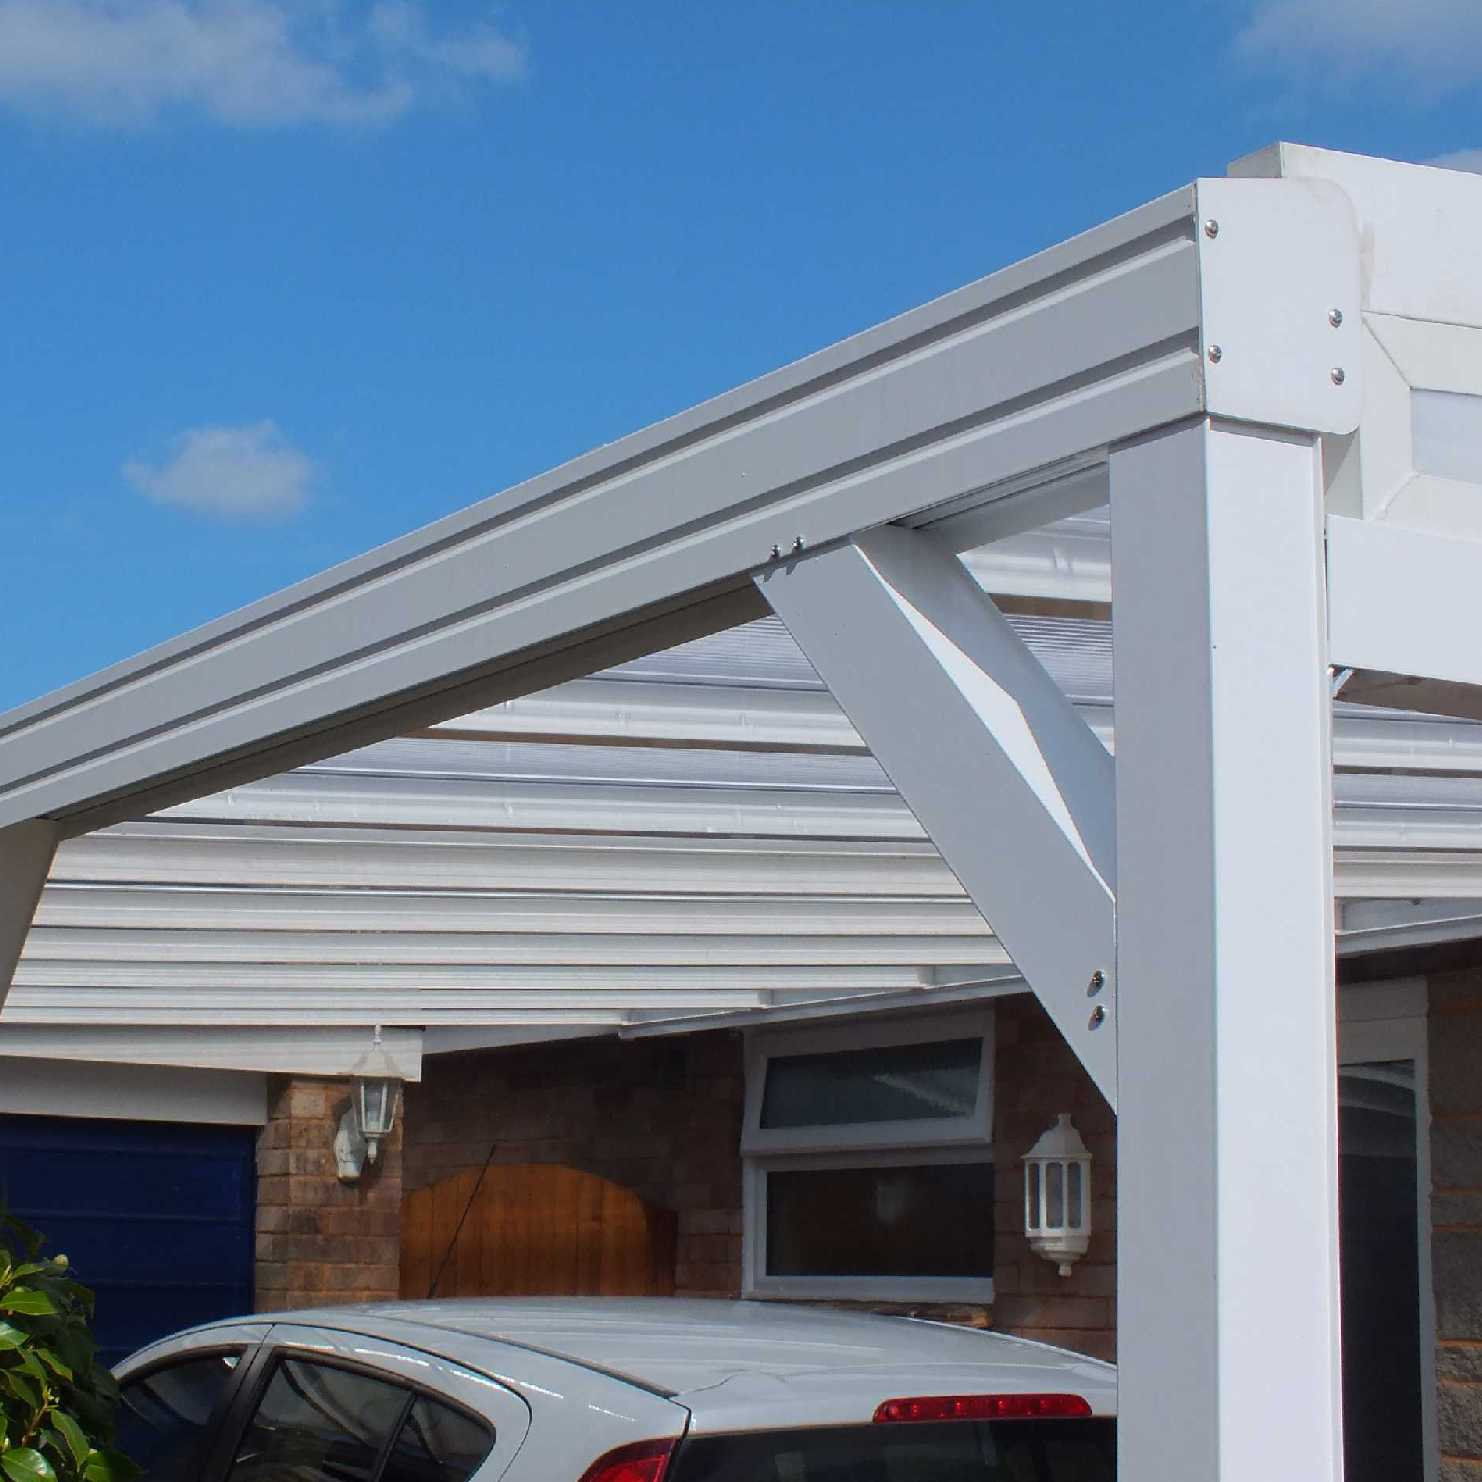 Great deals on Omega Smart White Lean-To Canopy with 16mm Polycarbonate Glazing - 7.4m (W) x 3.0m (P), (4) Supporting Posts